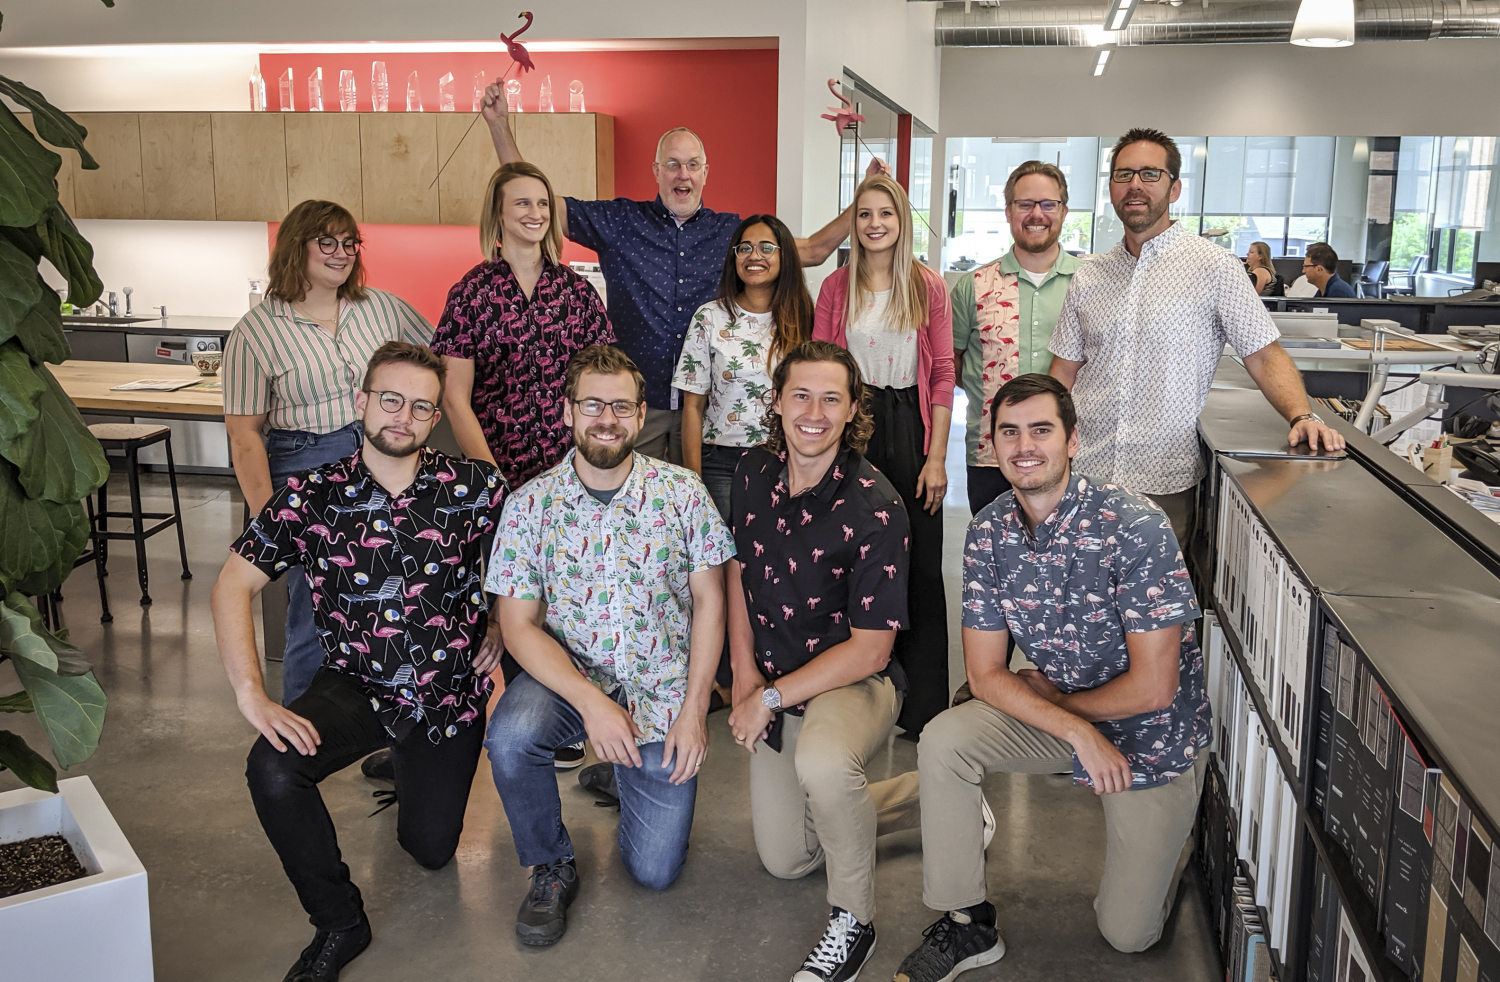 Staff group photo wearing flamingo-themed apparel. One staff member holds up two law flamingos.